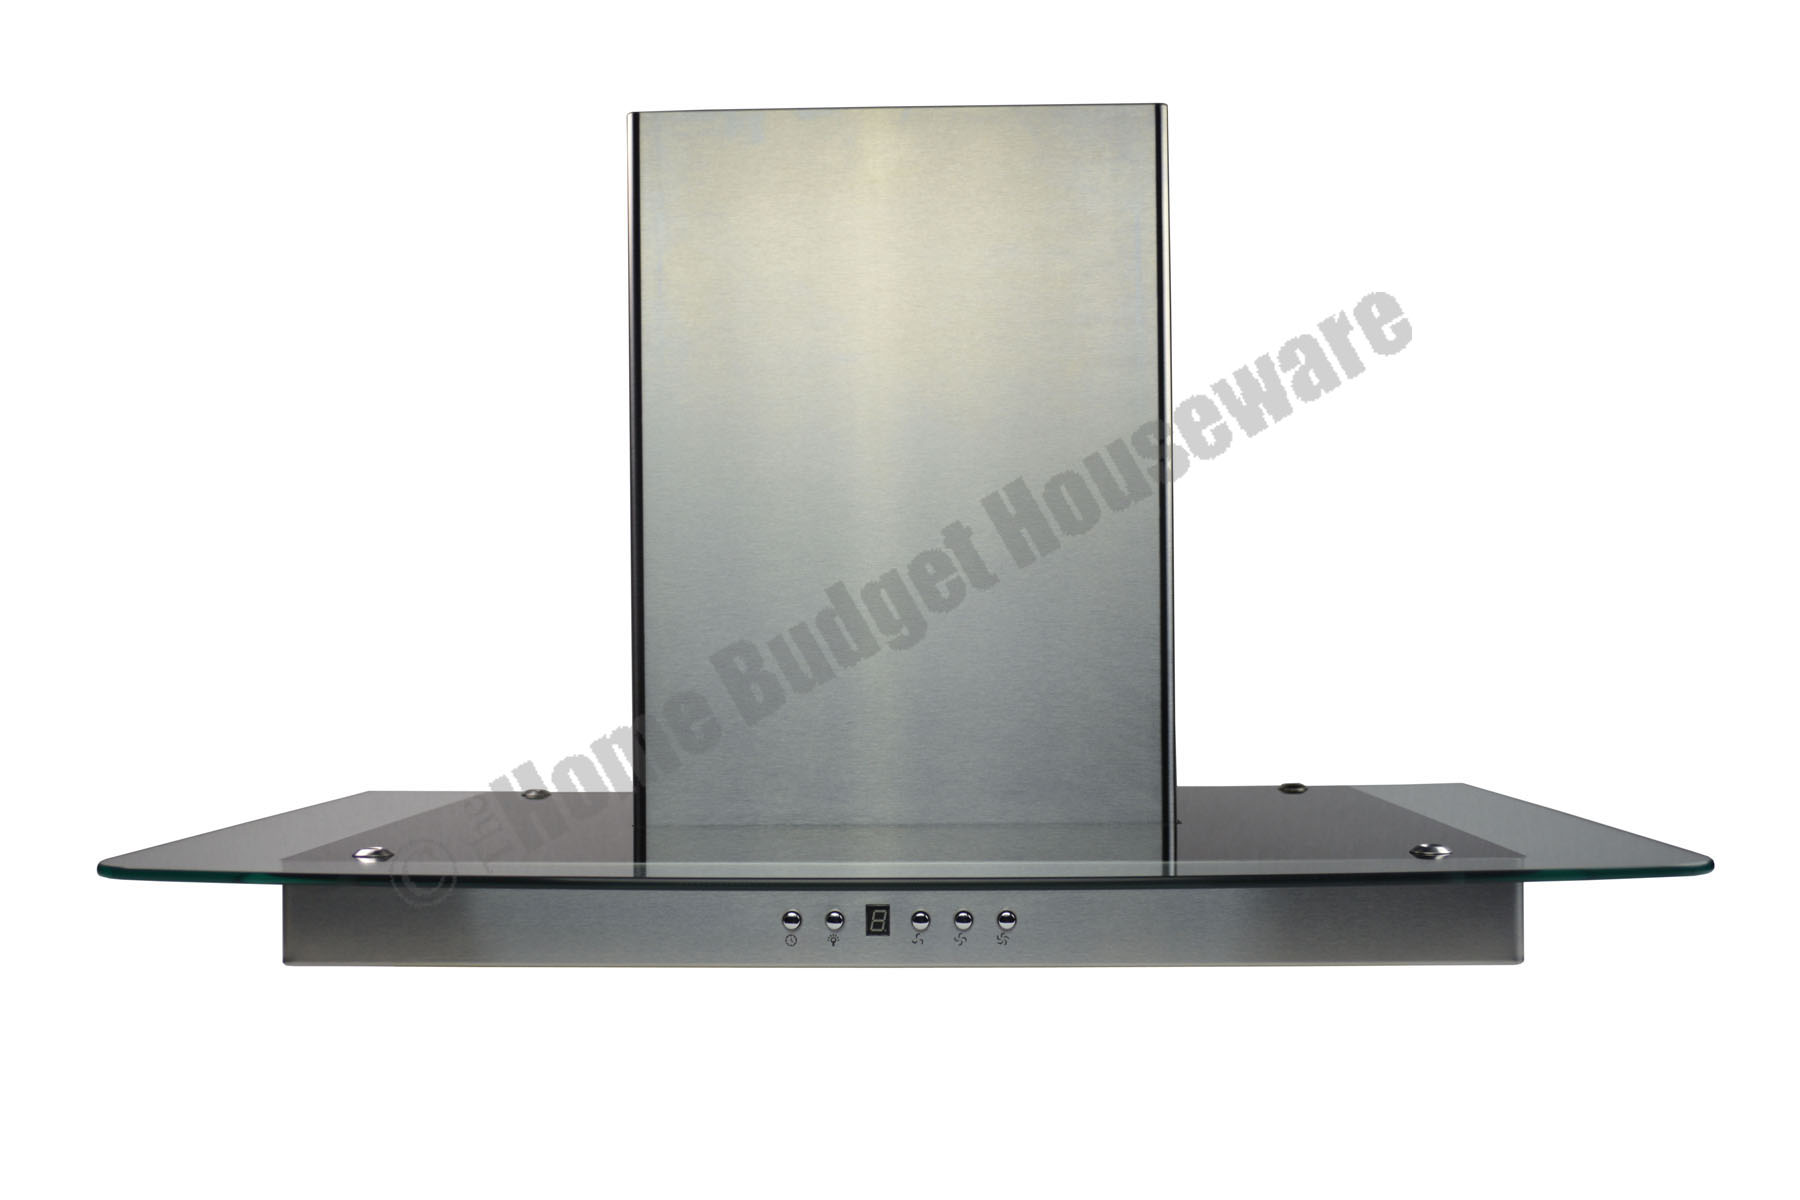 30 Wall Mount Stainless Steel Range Hood Vent Charcoal Filter [RHKQ2]